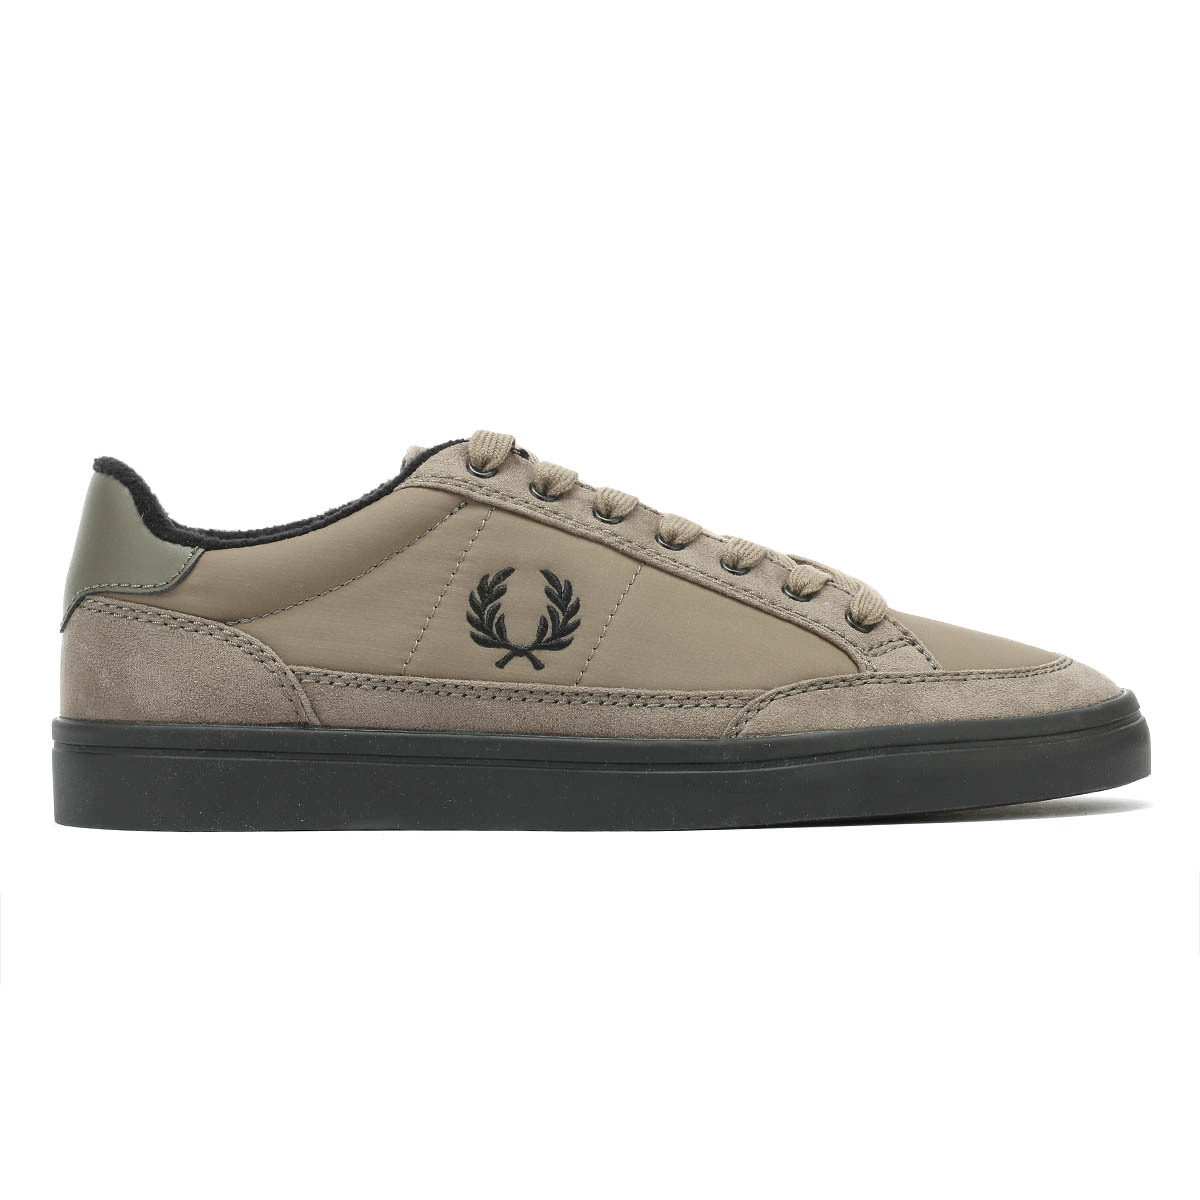 FROT Perry  Uomo Trainers Dust Beige Schuhes Deuce Winterised Microfibre Casual Schuhes Beige dc9a83